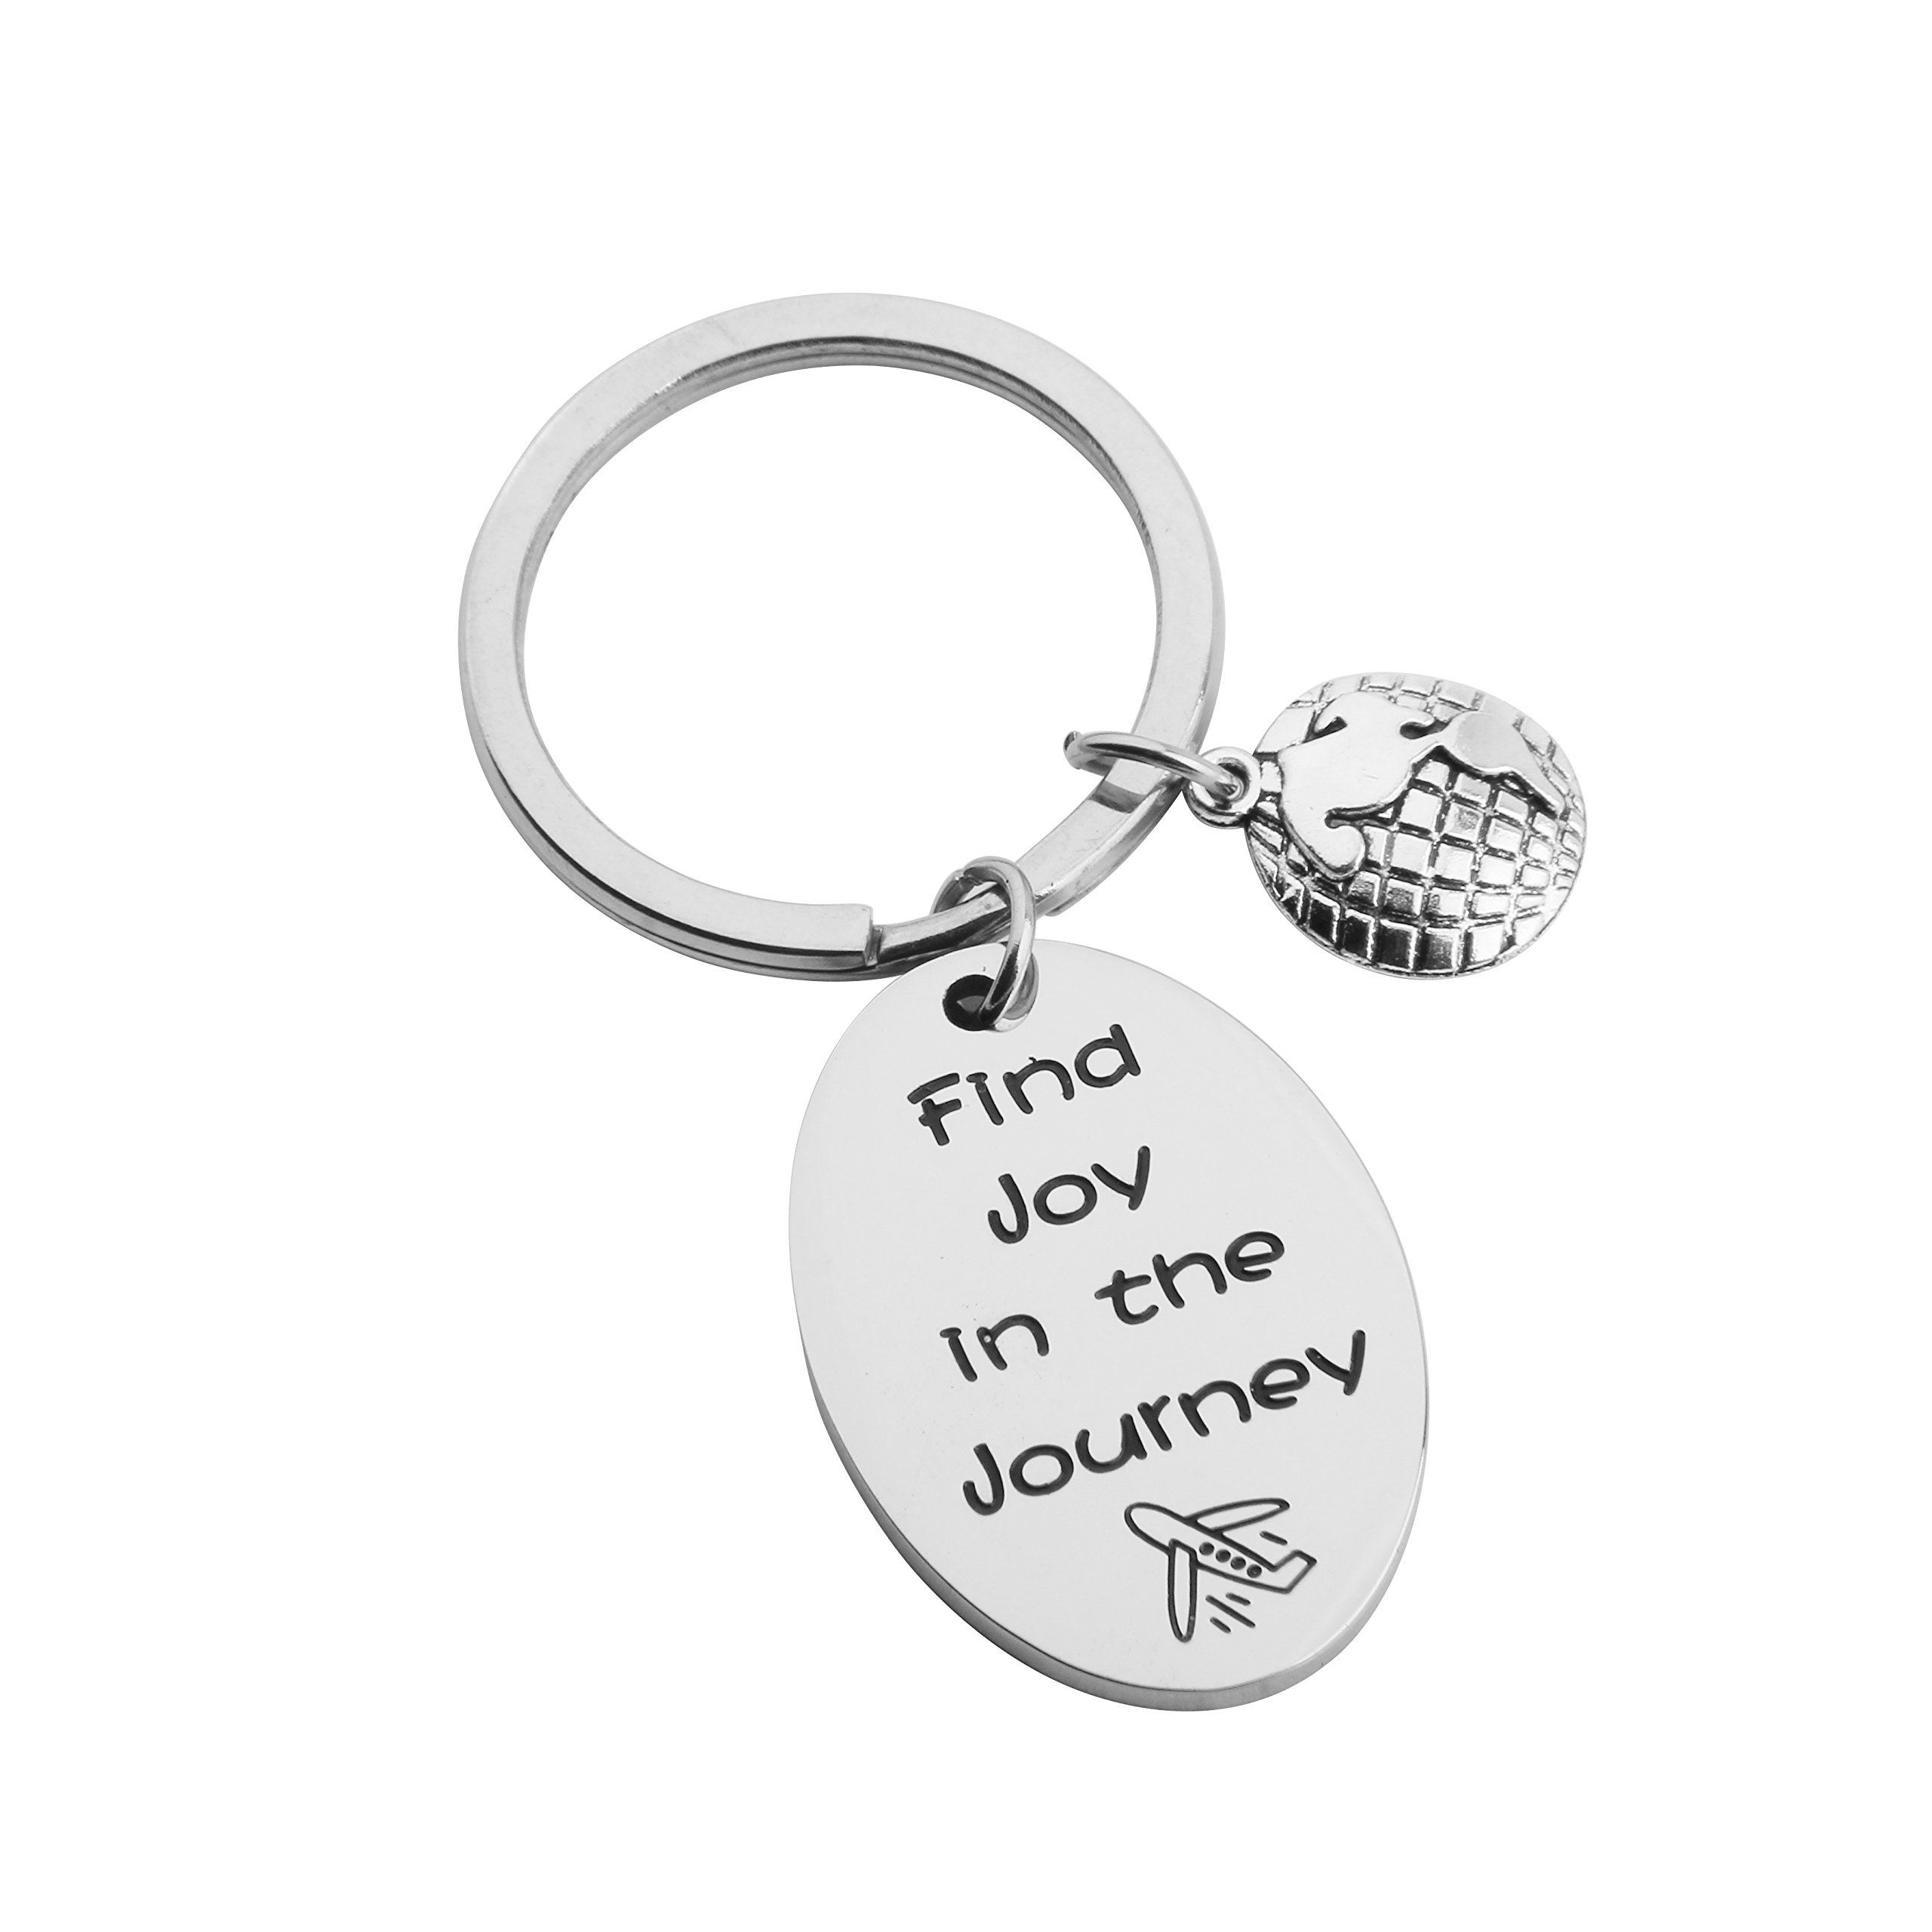 SEIRAA Graduation Gift Find Joy In The Journey Travel Bracelet Retirement Gift Traveling Jewelry For Women (keychain)